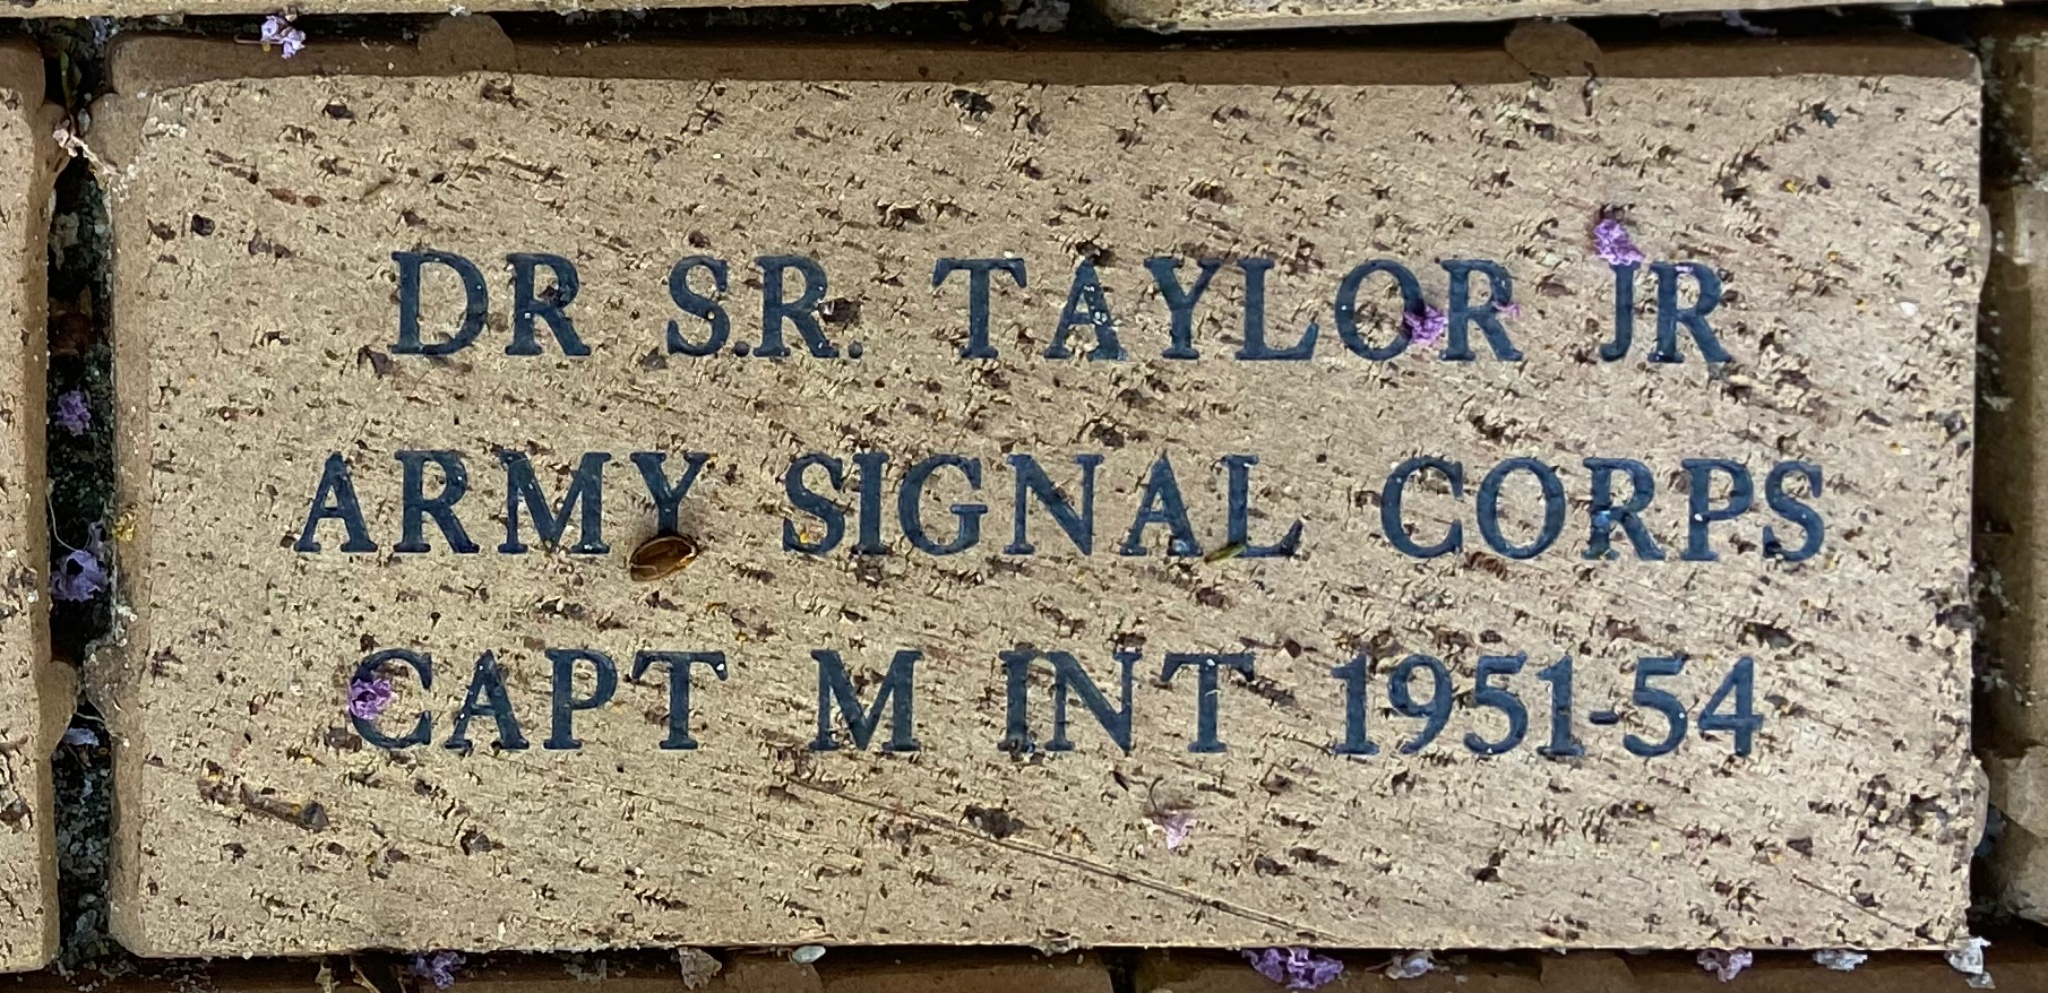 DR. S.R. TAYLOR JR ARMY SIGNAL CORPS CAPT M INT 1951-54